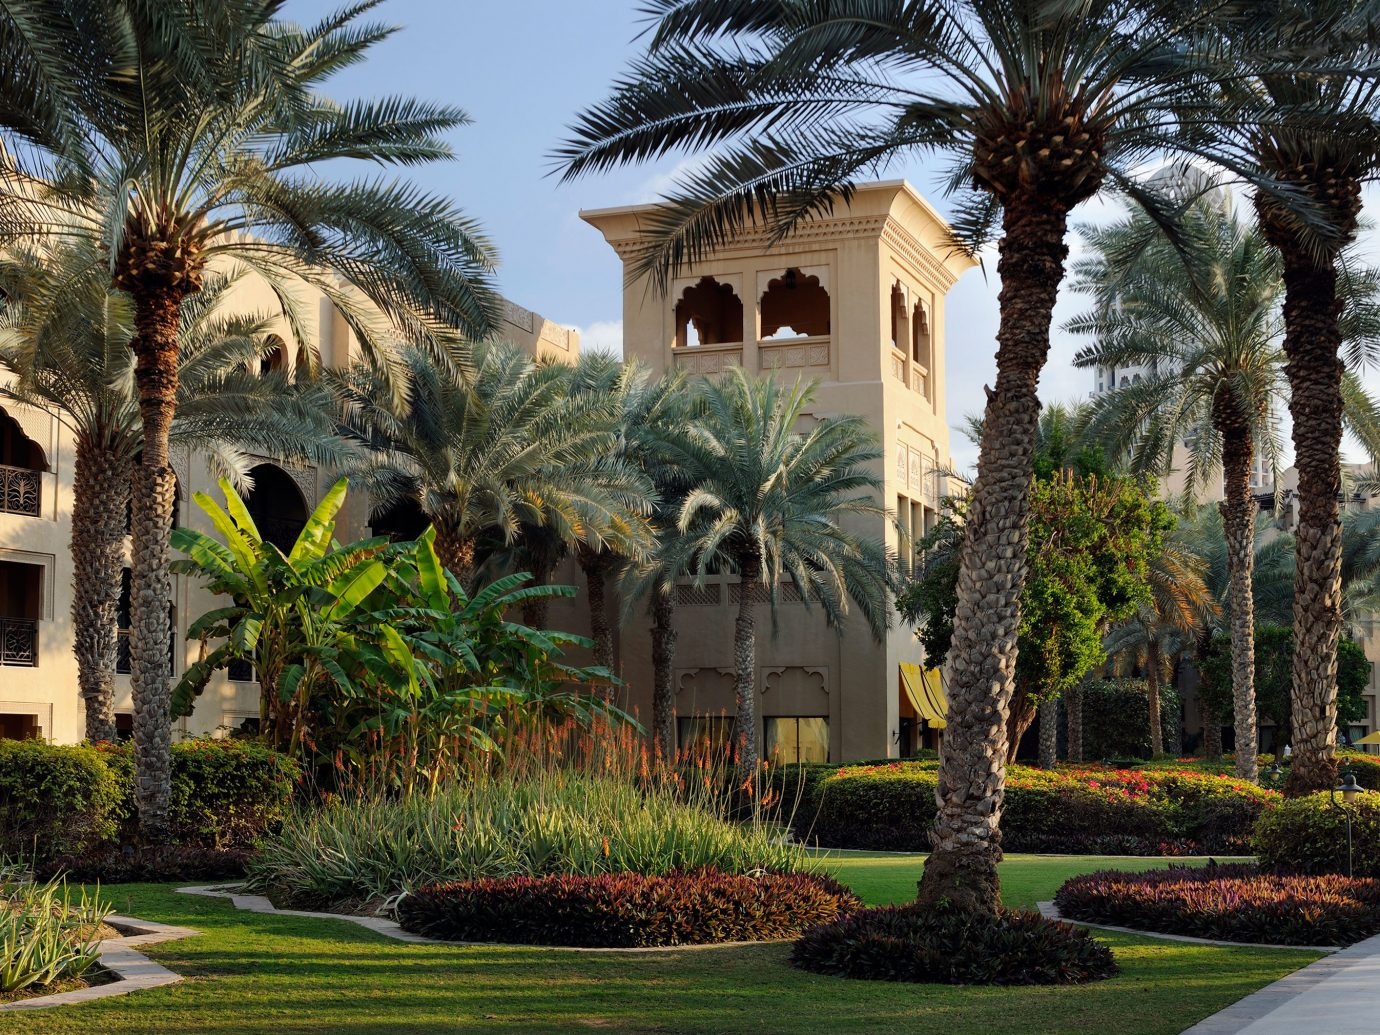 Dubai Elegant Exterior Garden Grounds Hotels Luxury Luxury Travel Middle East Modern Resort tree outdoor grass street property house estate plant home vacation arecales mansion Courtyard Villa hacienda palace residential palm bushes